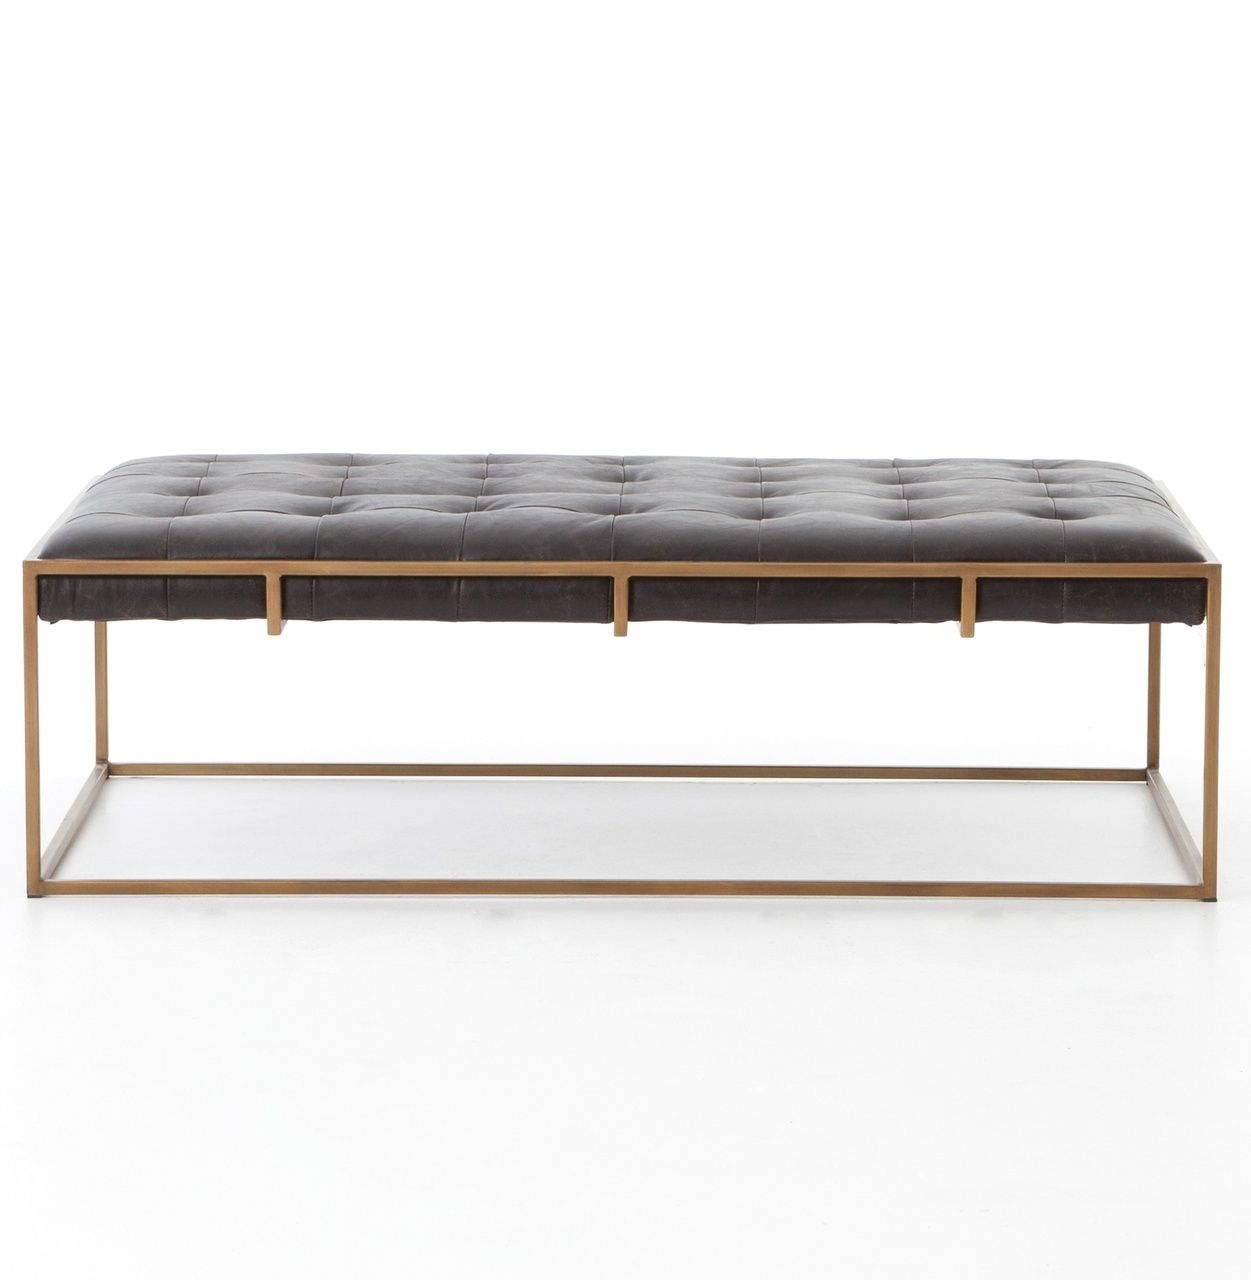 Oxford Tufted Black Leather Ottoman Coffee Table 50\